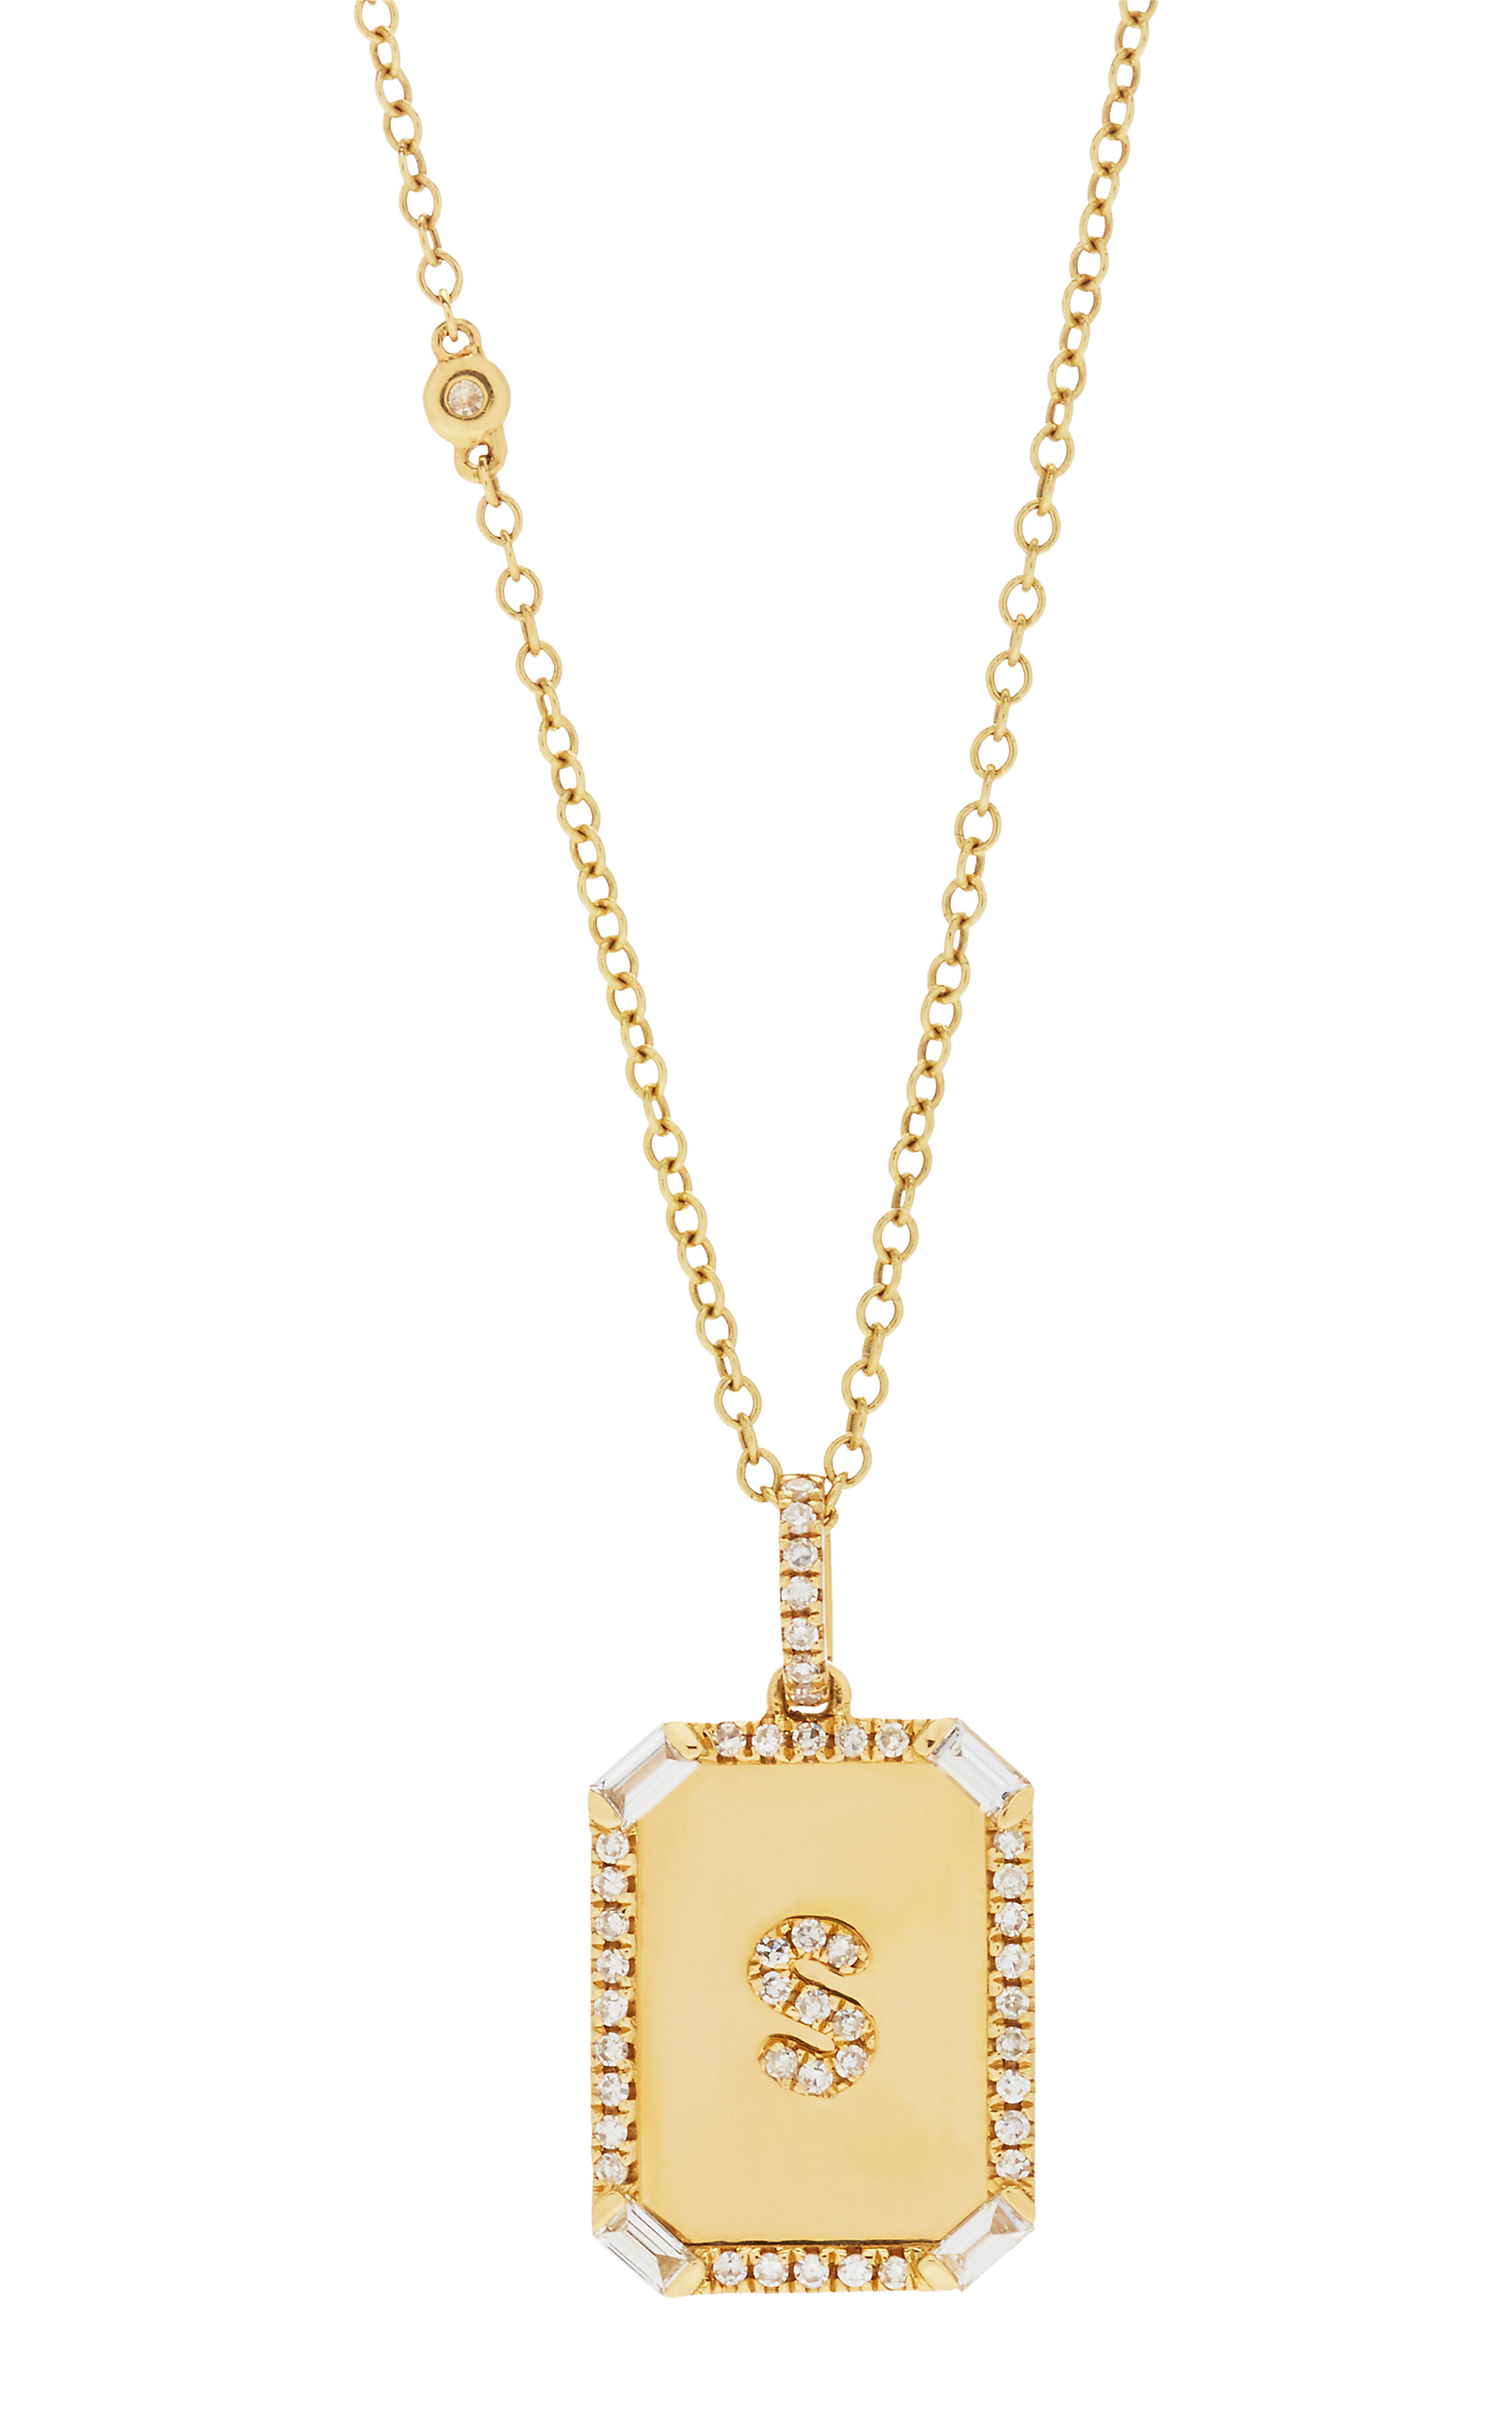 deco jewelry roberto gold classic normal lyst necklace coin gallery diamond product white pendant baguette